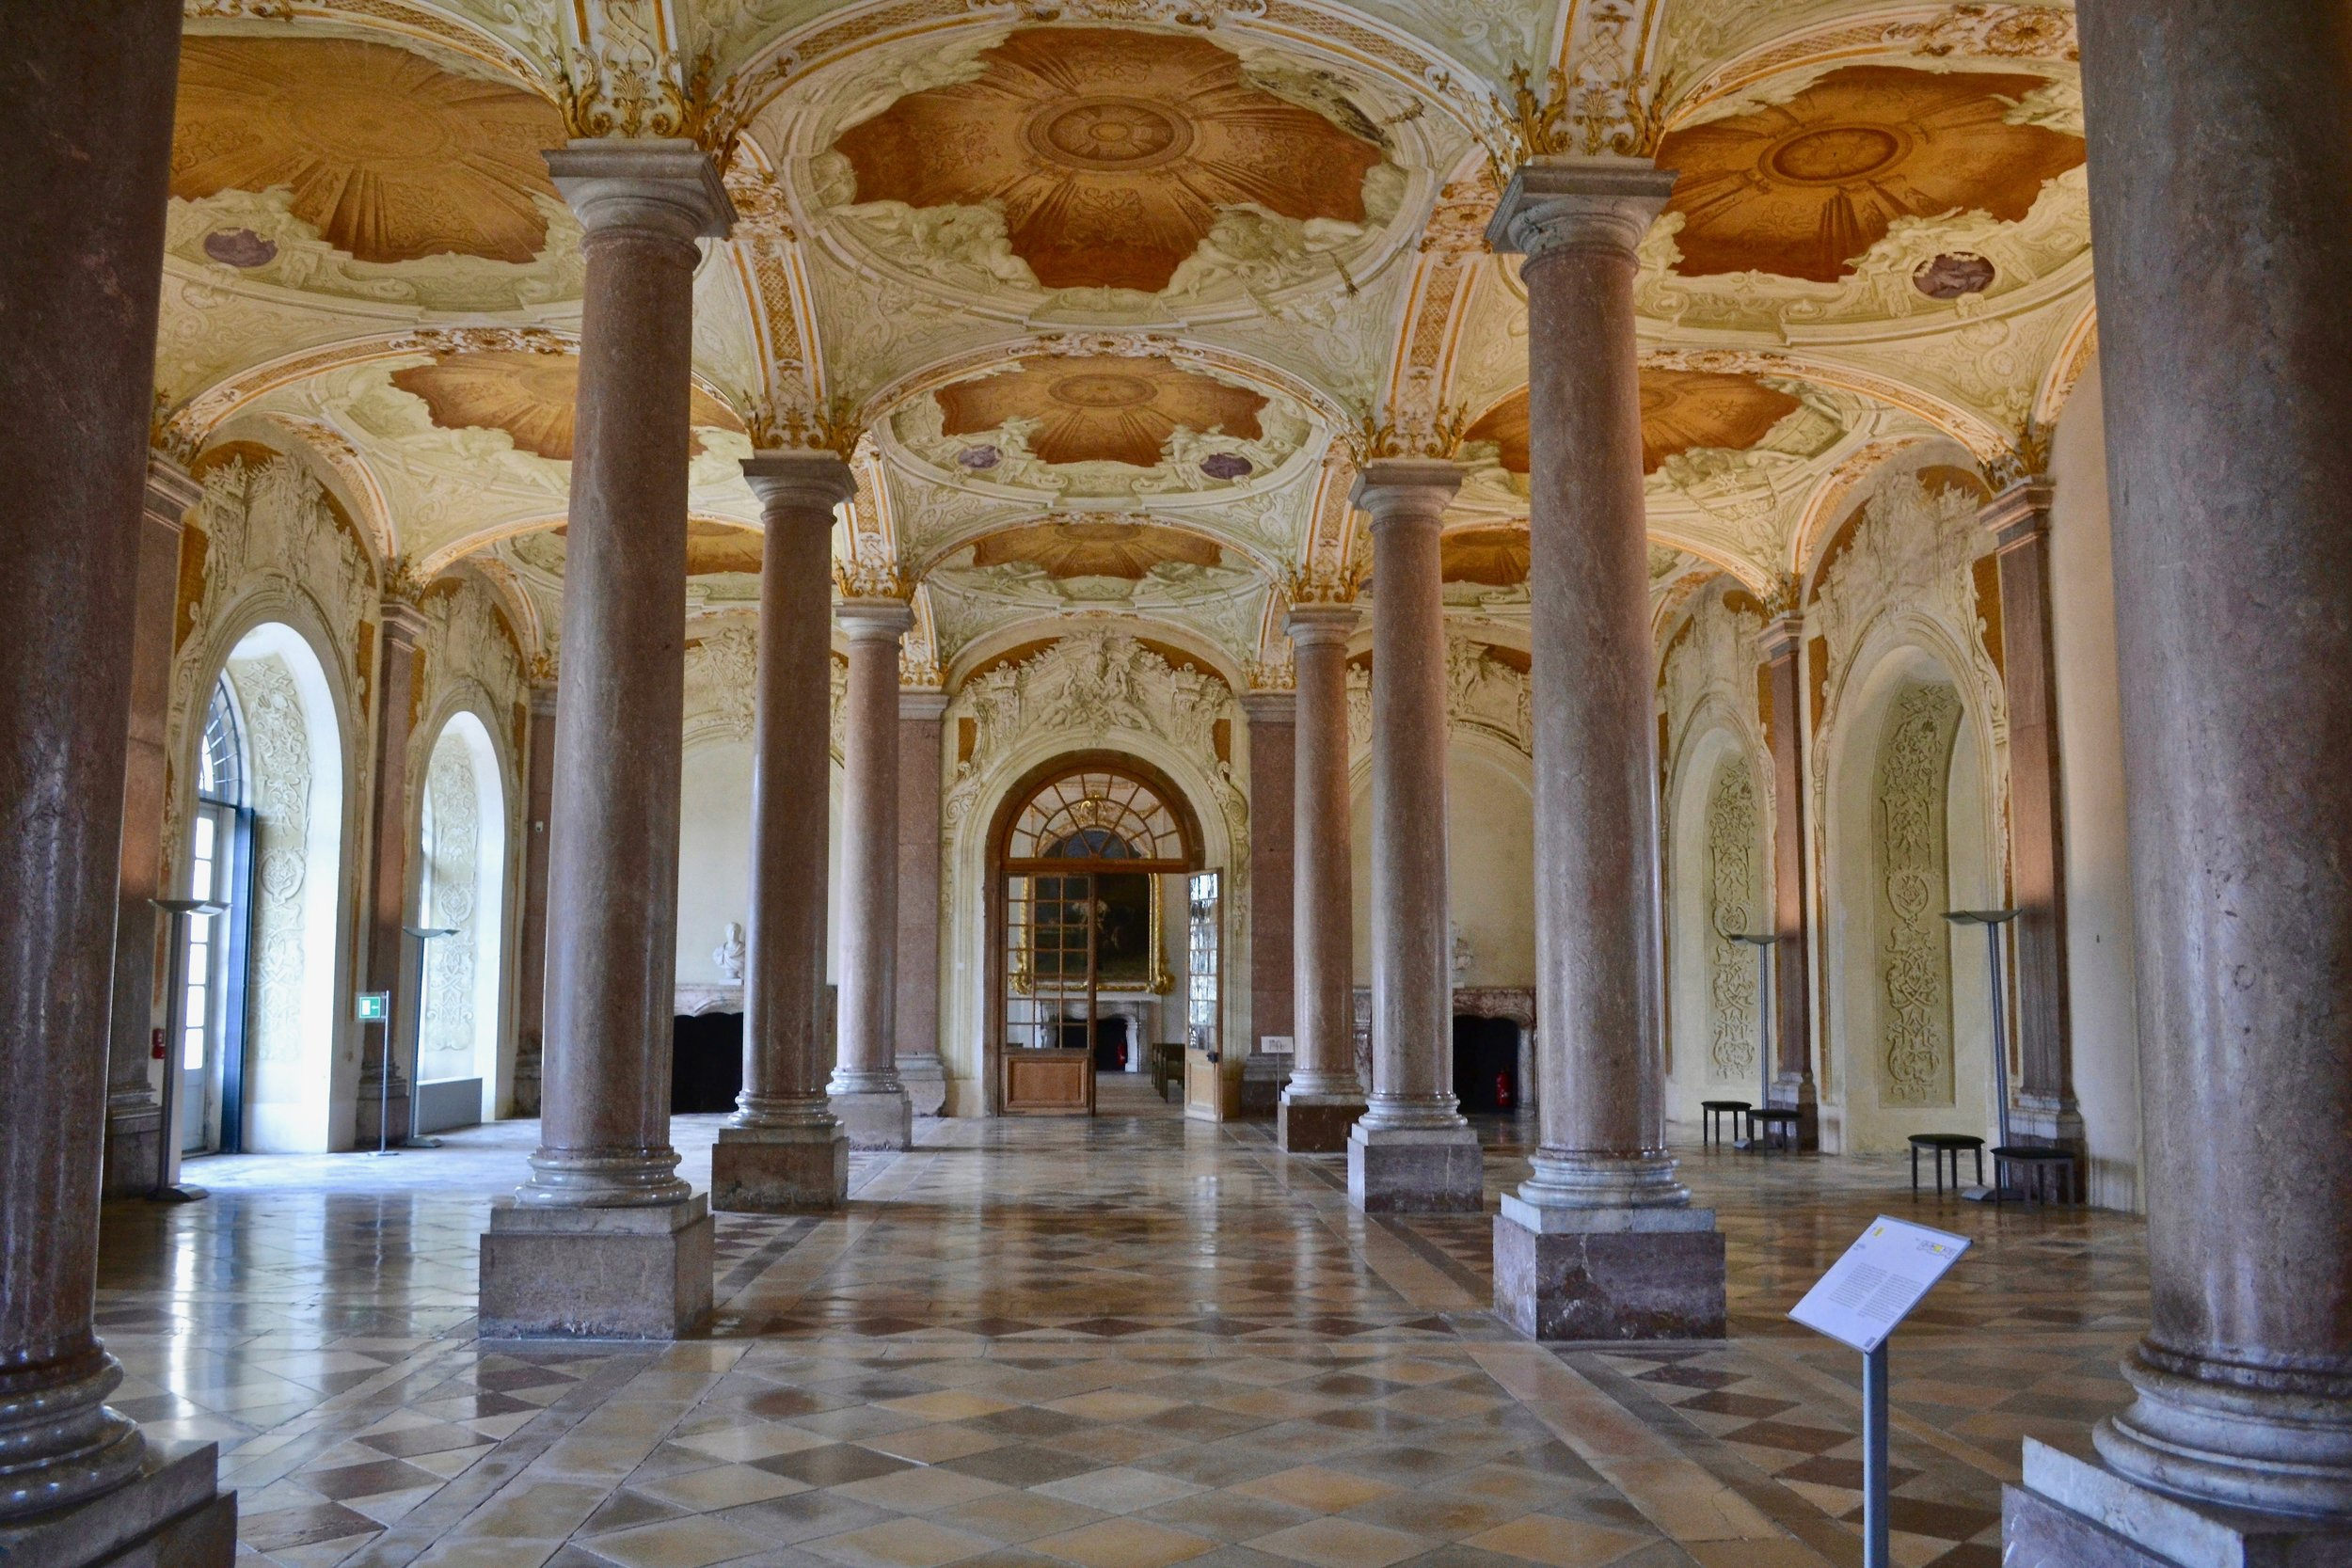 Schleissheim Palace Entrance Hall